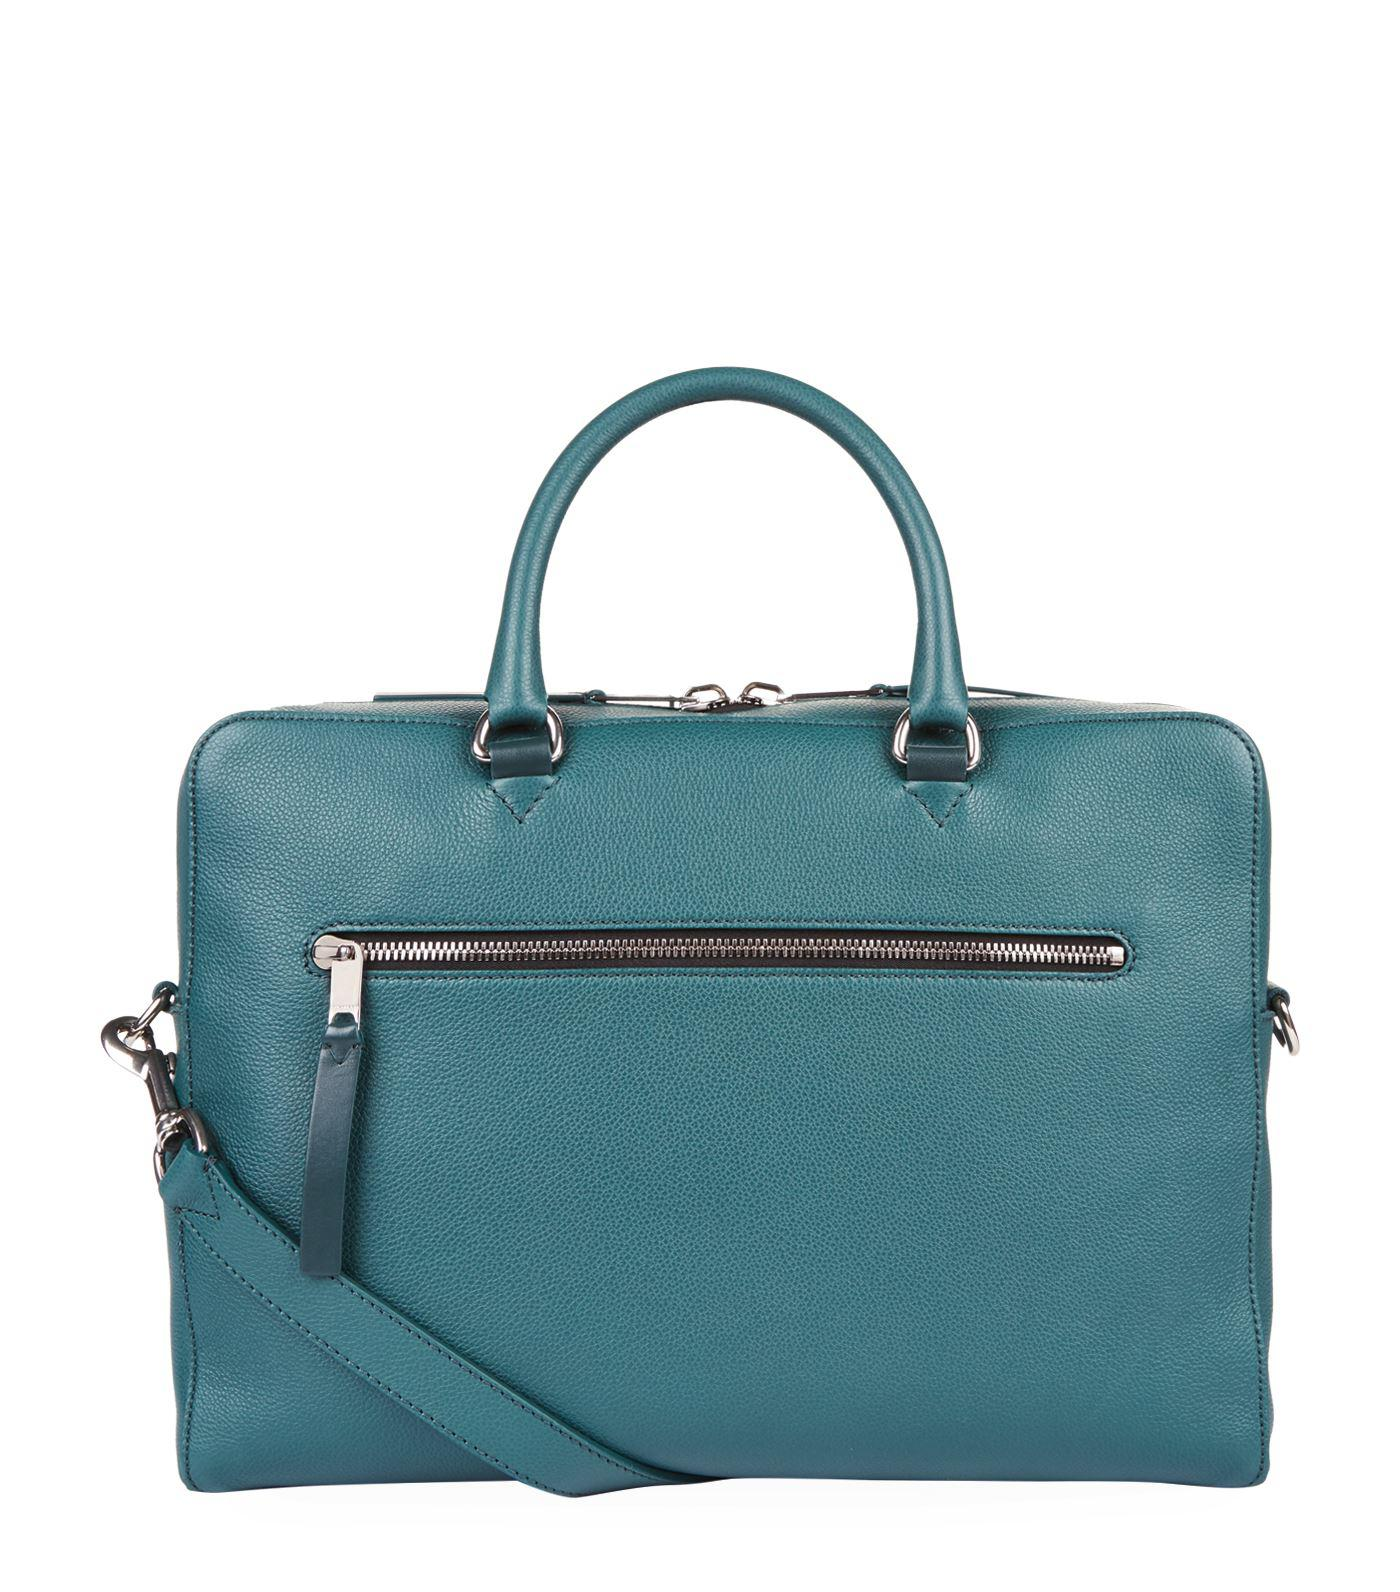 ef05a75444b0 Burberry - Blue Grained Leather Briefcase for Men - Lyst. View fullscreen